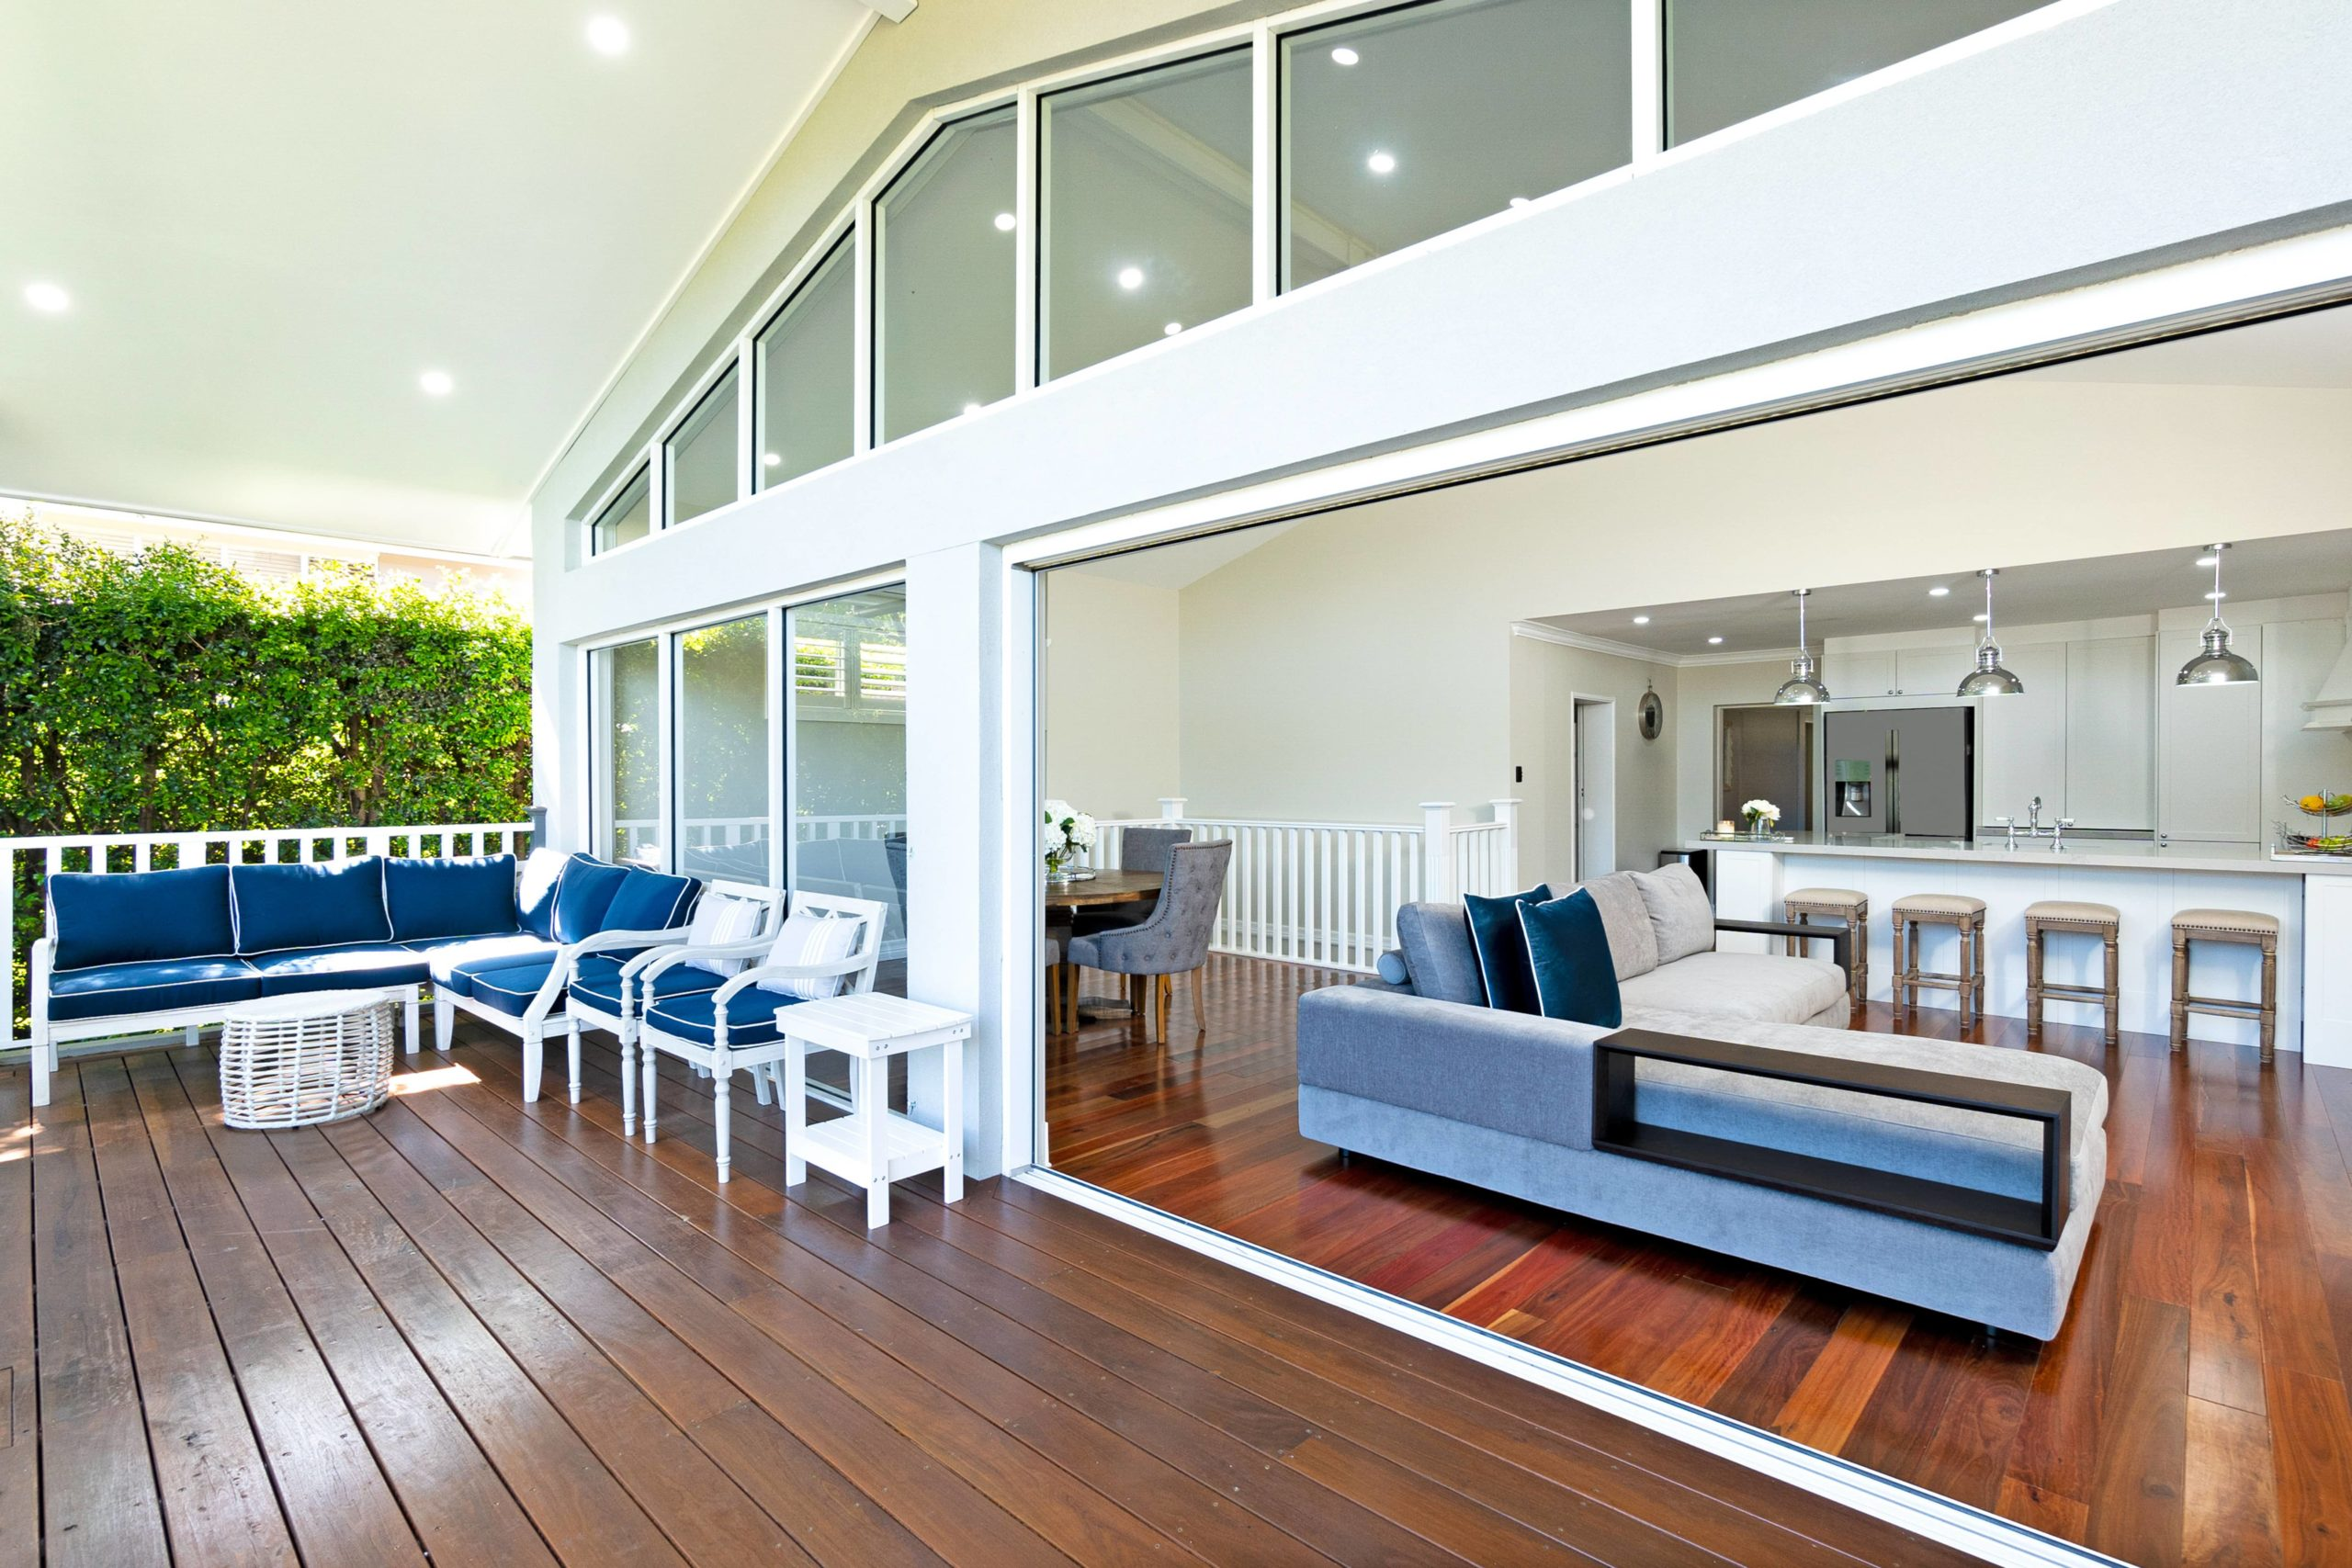 Indoor outdoor living with living area and deck